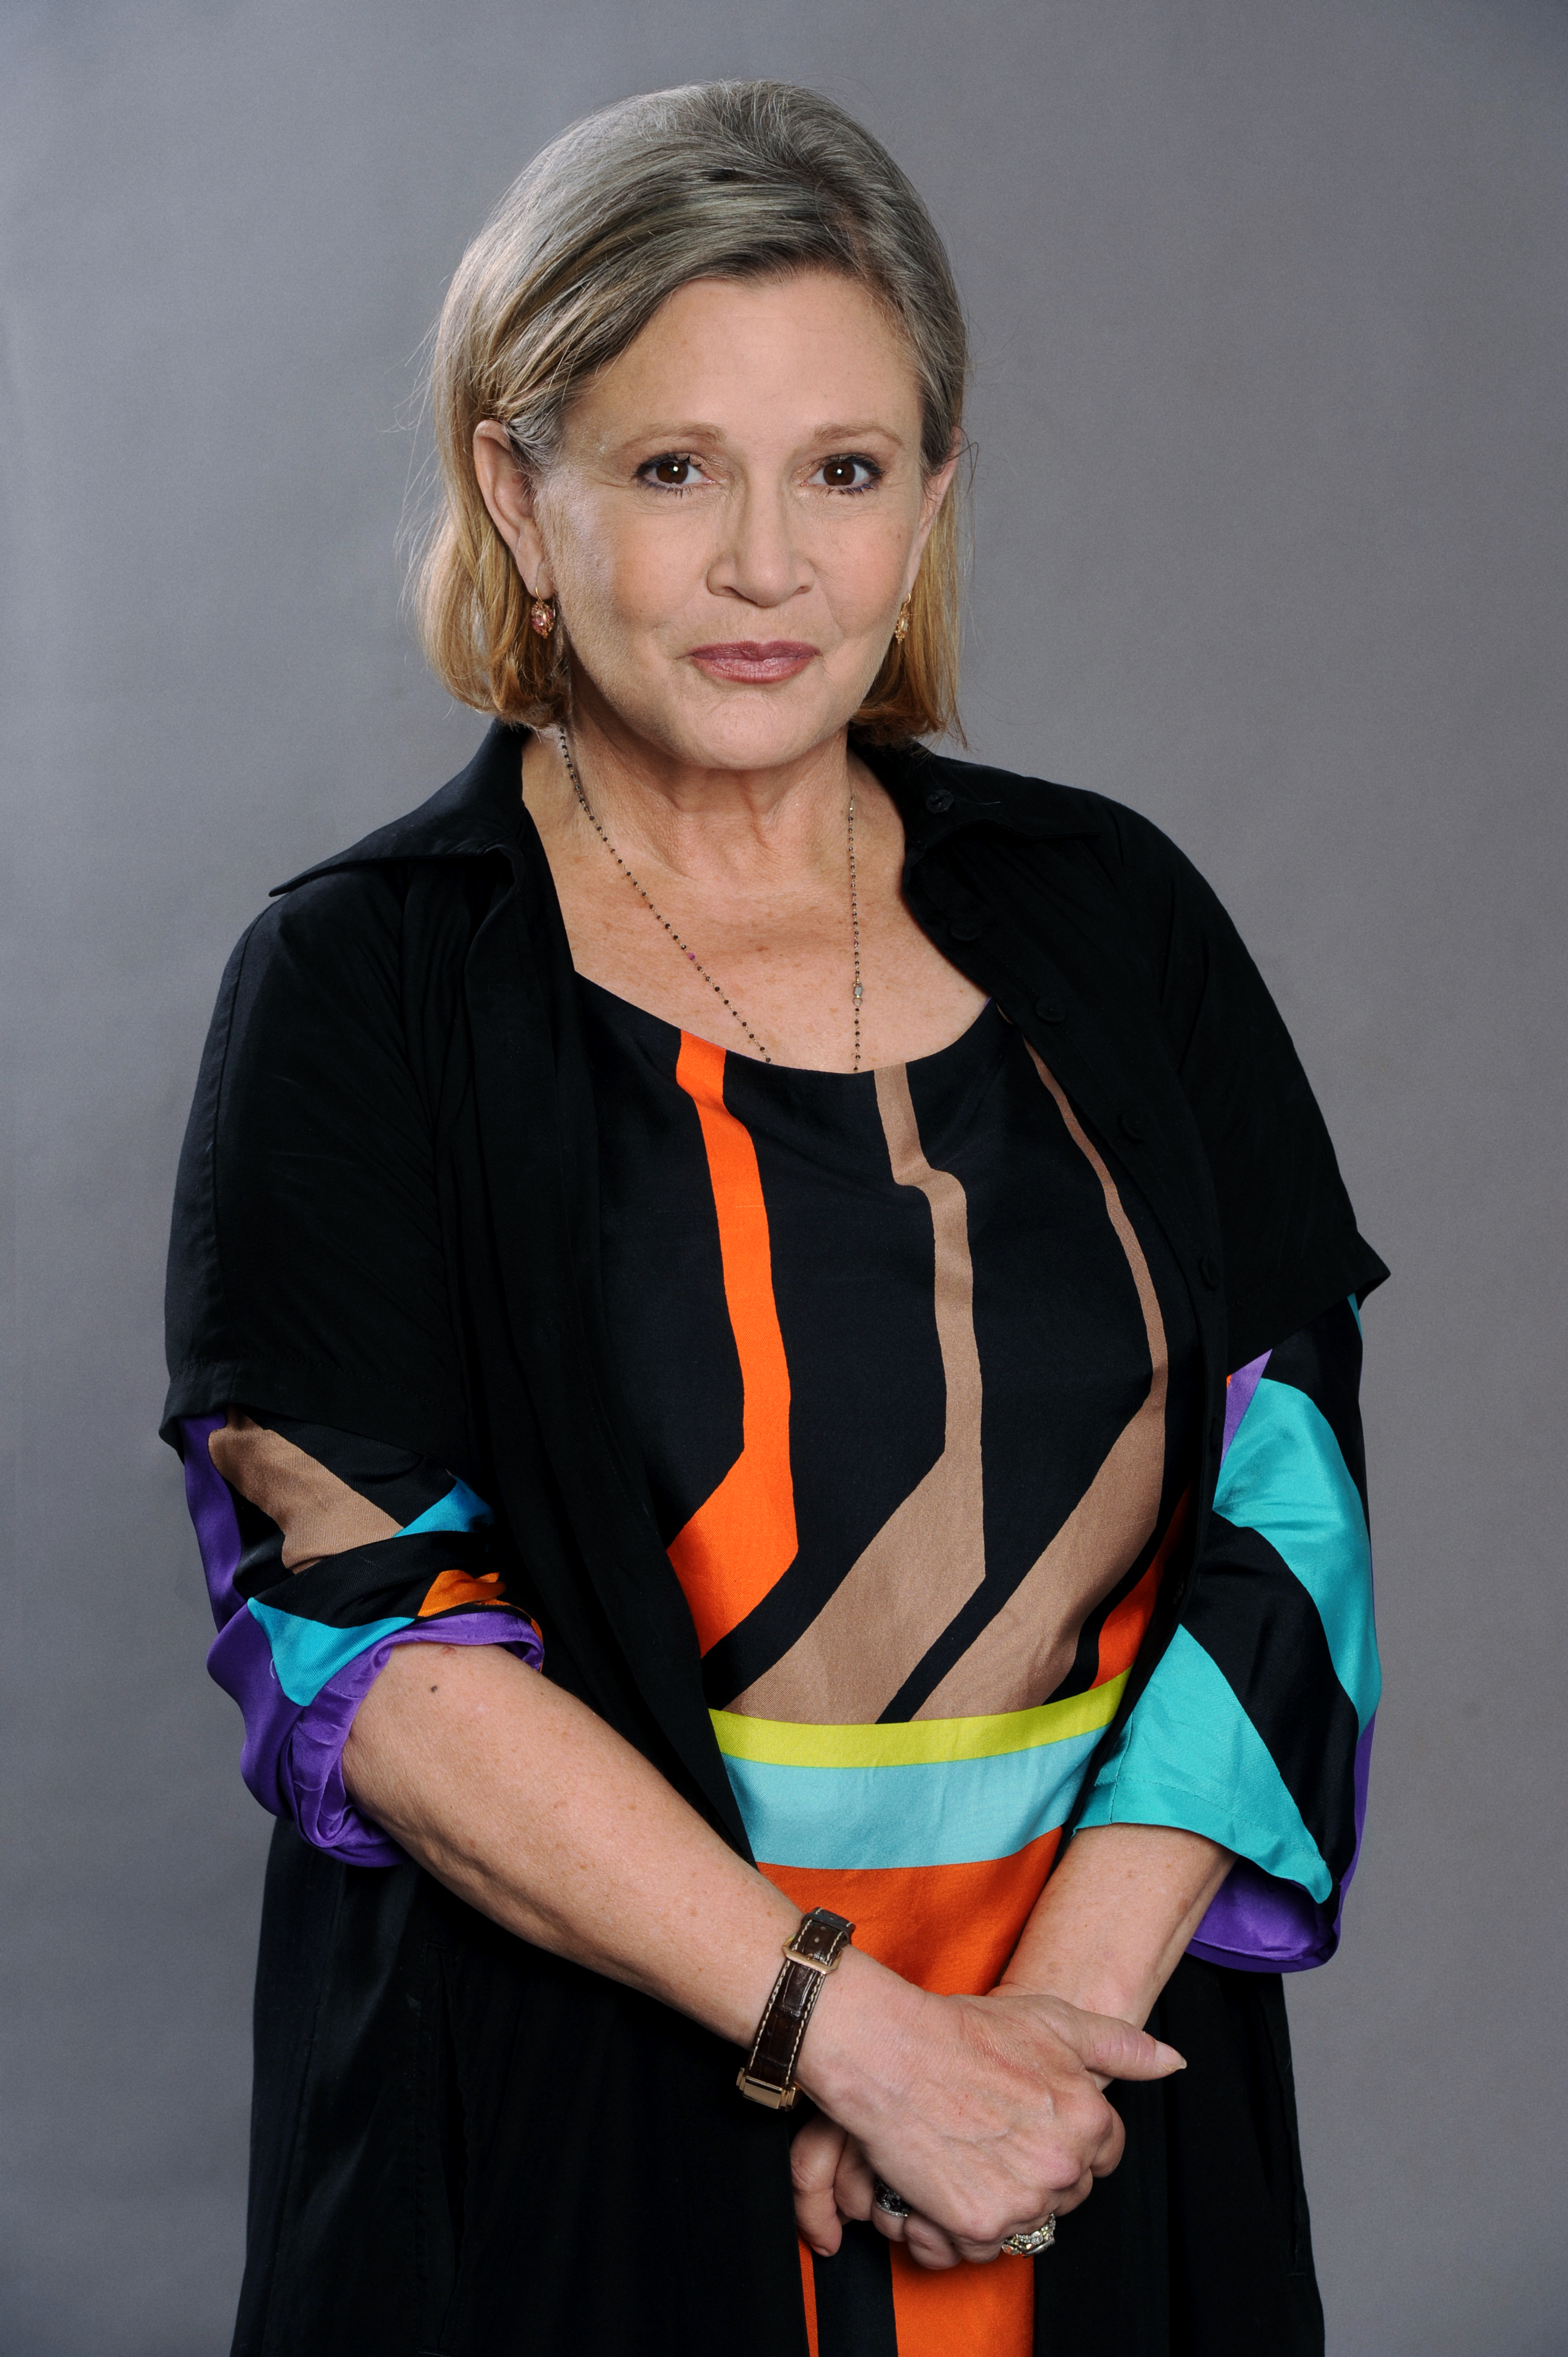 New York f67de 33d8a Carrie Fisher – 1956-2016 – The Velvet Onion